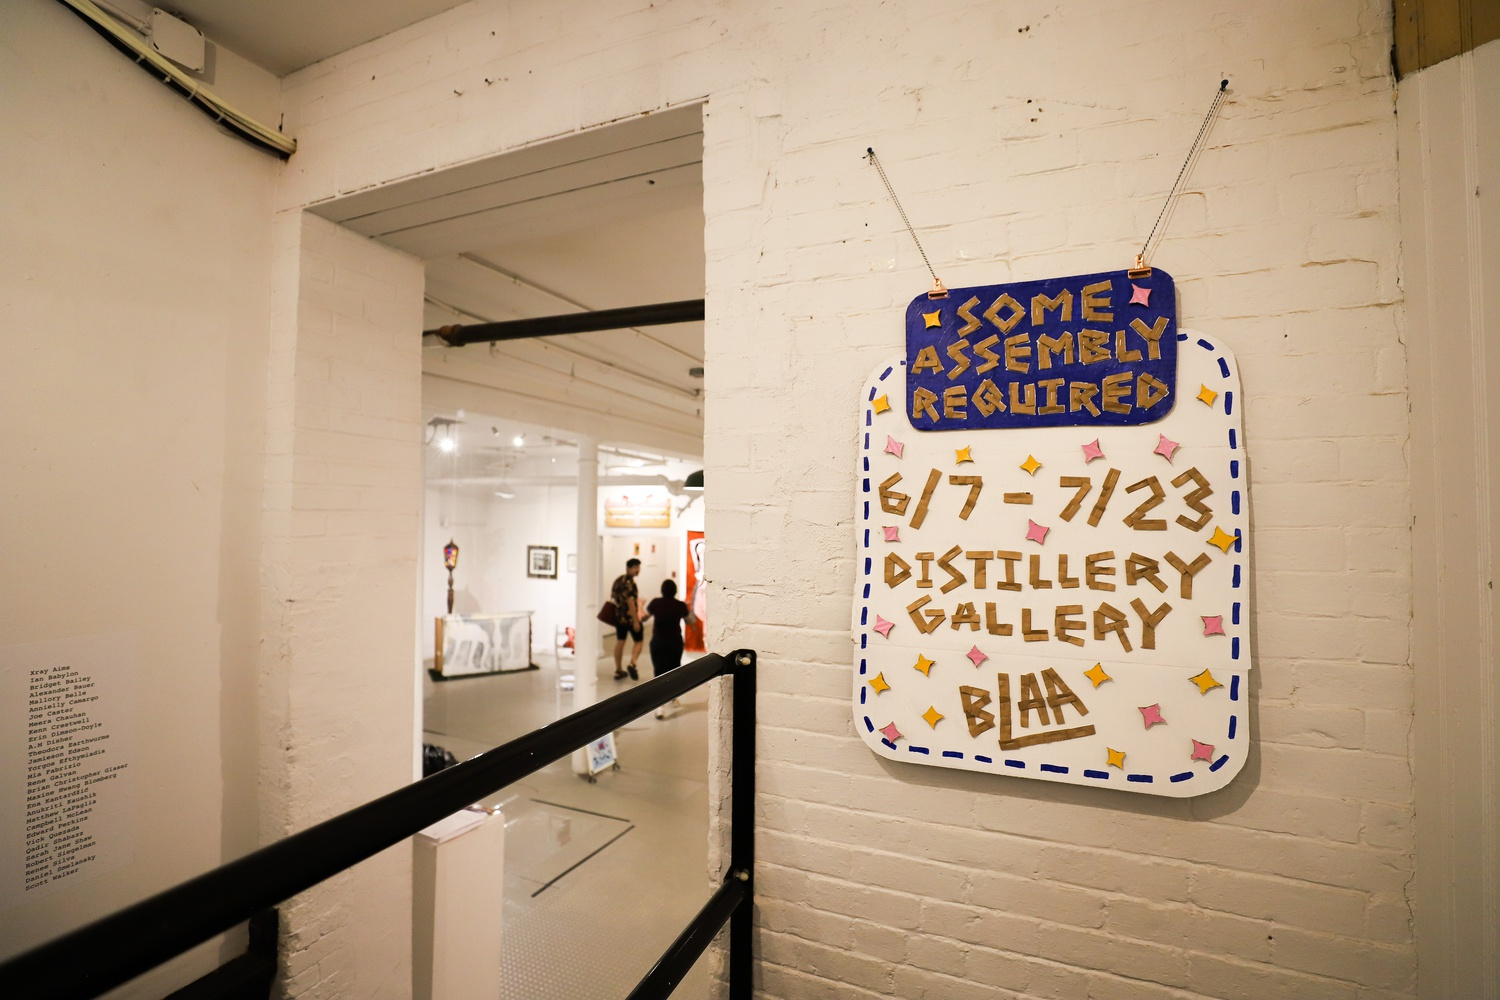 """The Boston LGBTQIA+ Artist Alliance, a volunteer artist-run organization, is displaying works by local queer artists at the Distillery Gallery in South Boston until late July in a showcase titled """"some assembly required."""""""